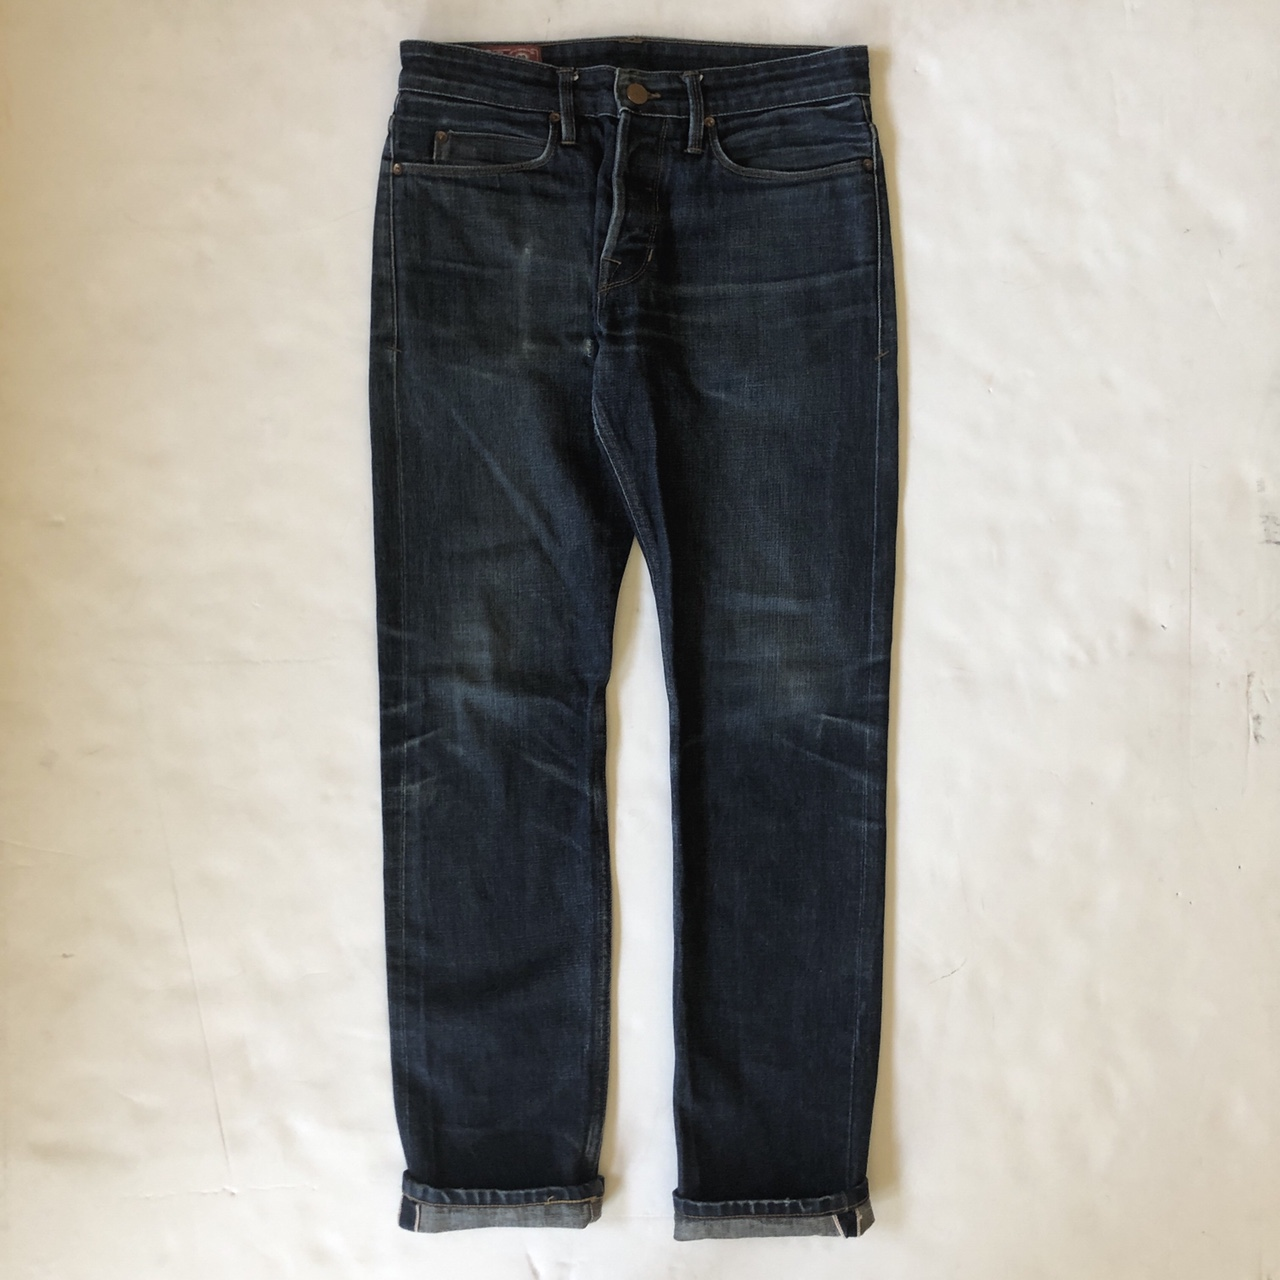 Product Image 1 - 💨Freenote selvedge denim💨  Well worn and